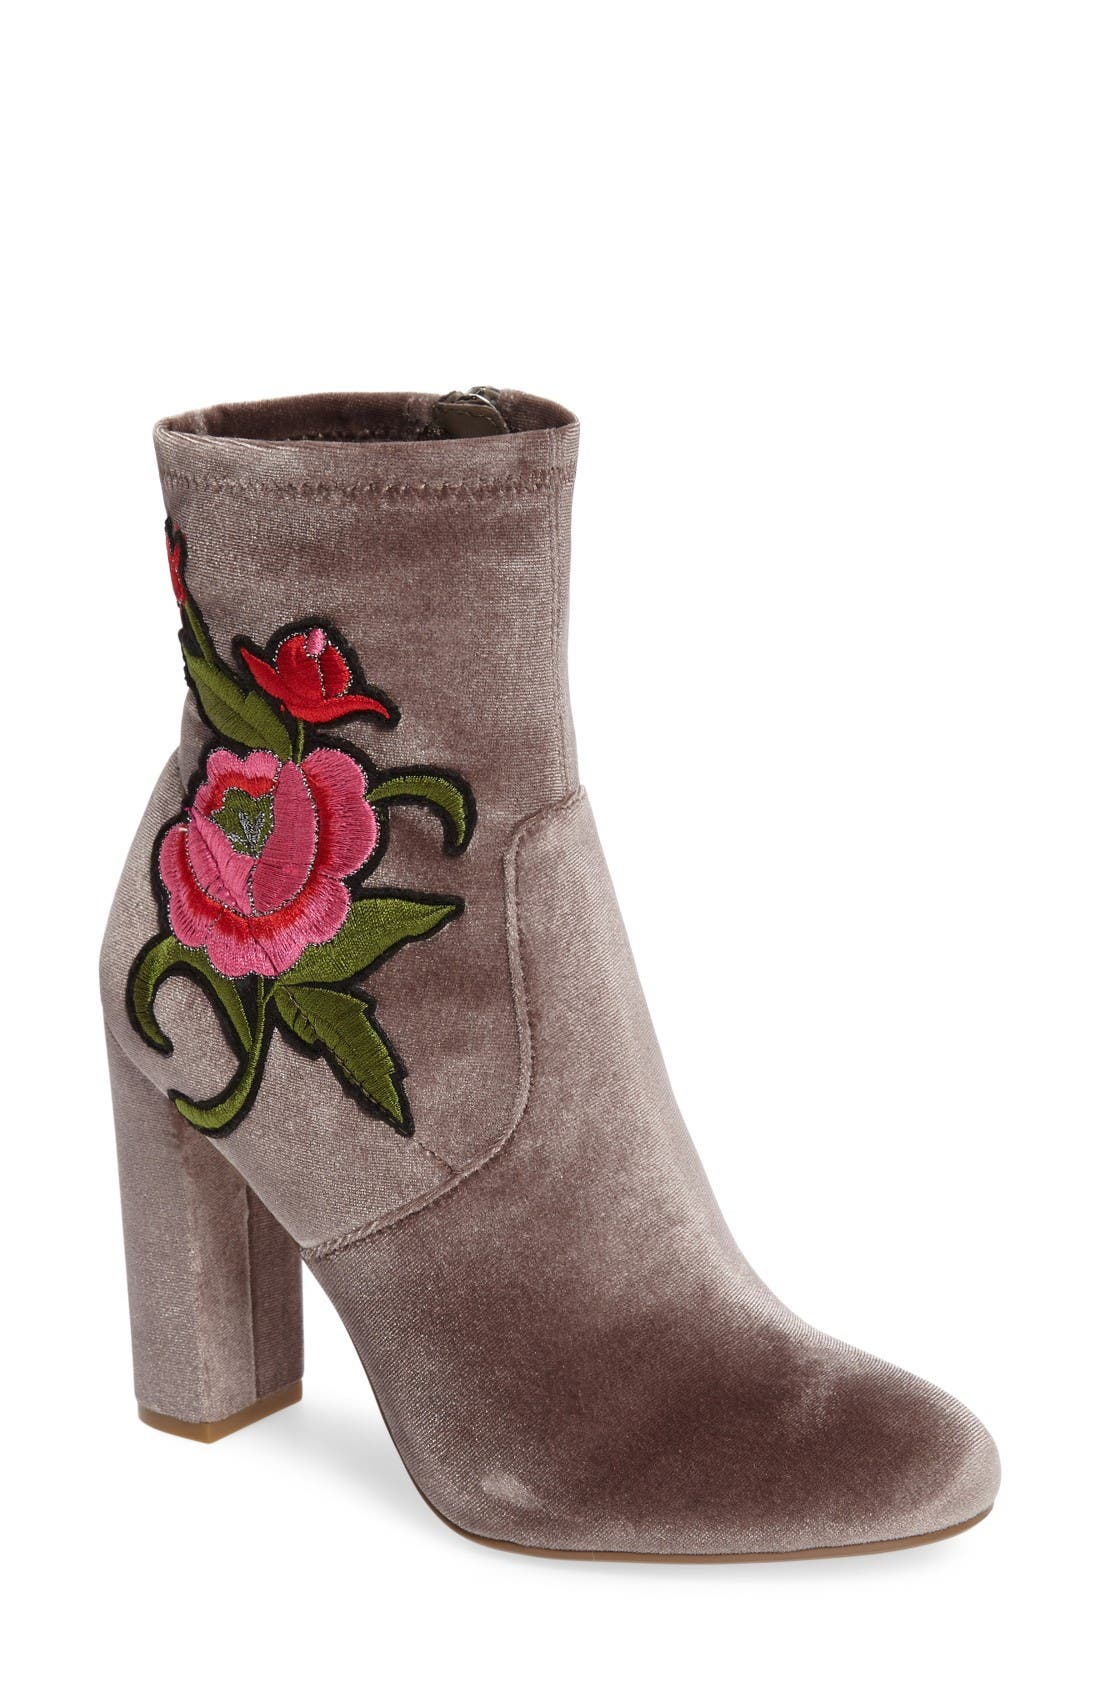 Alternate Image 1 Selected - Steve Madden Edition Embroidered Bootie (Women)